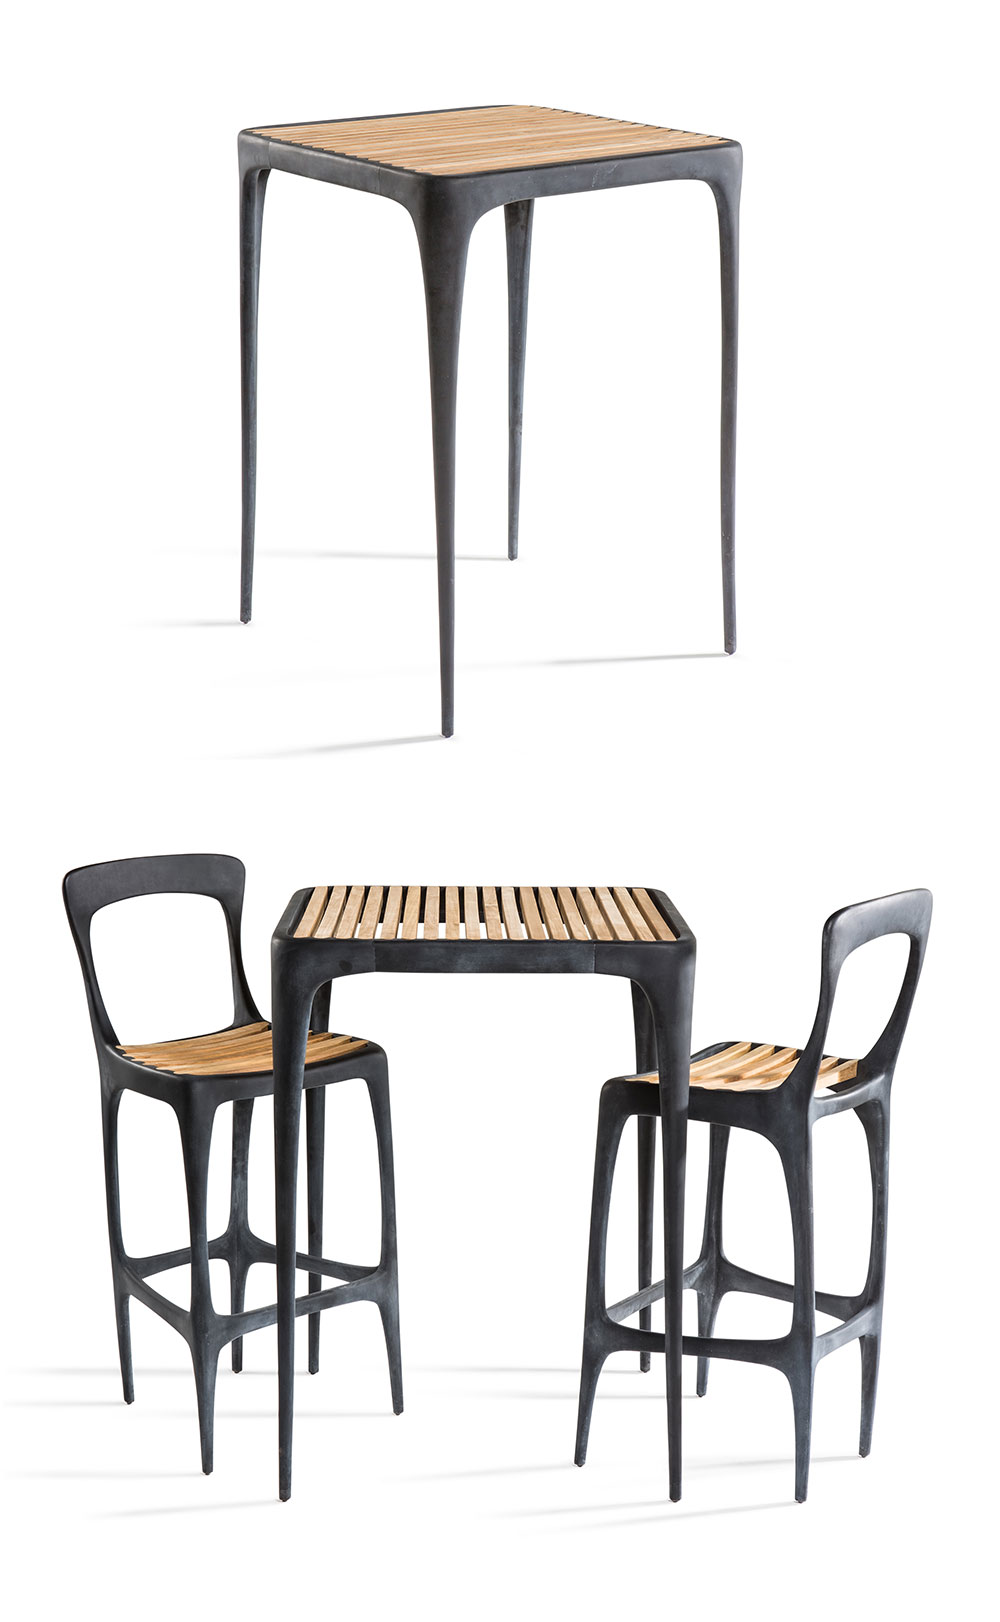 New CAS1 Bar Table to match the CAS1 Bar Chairs